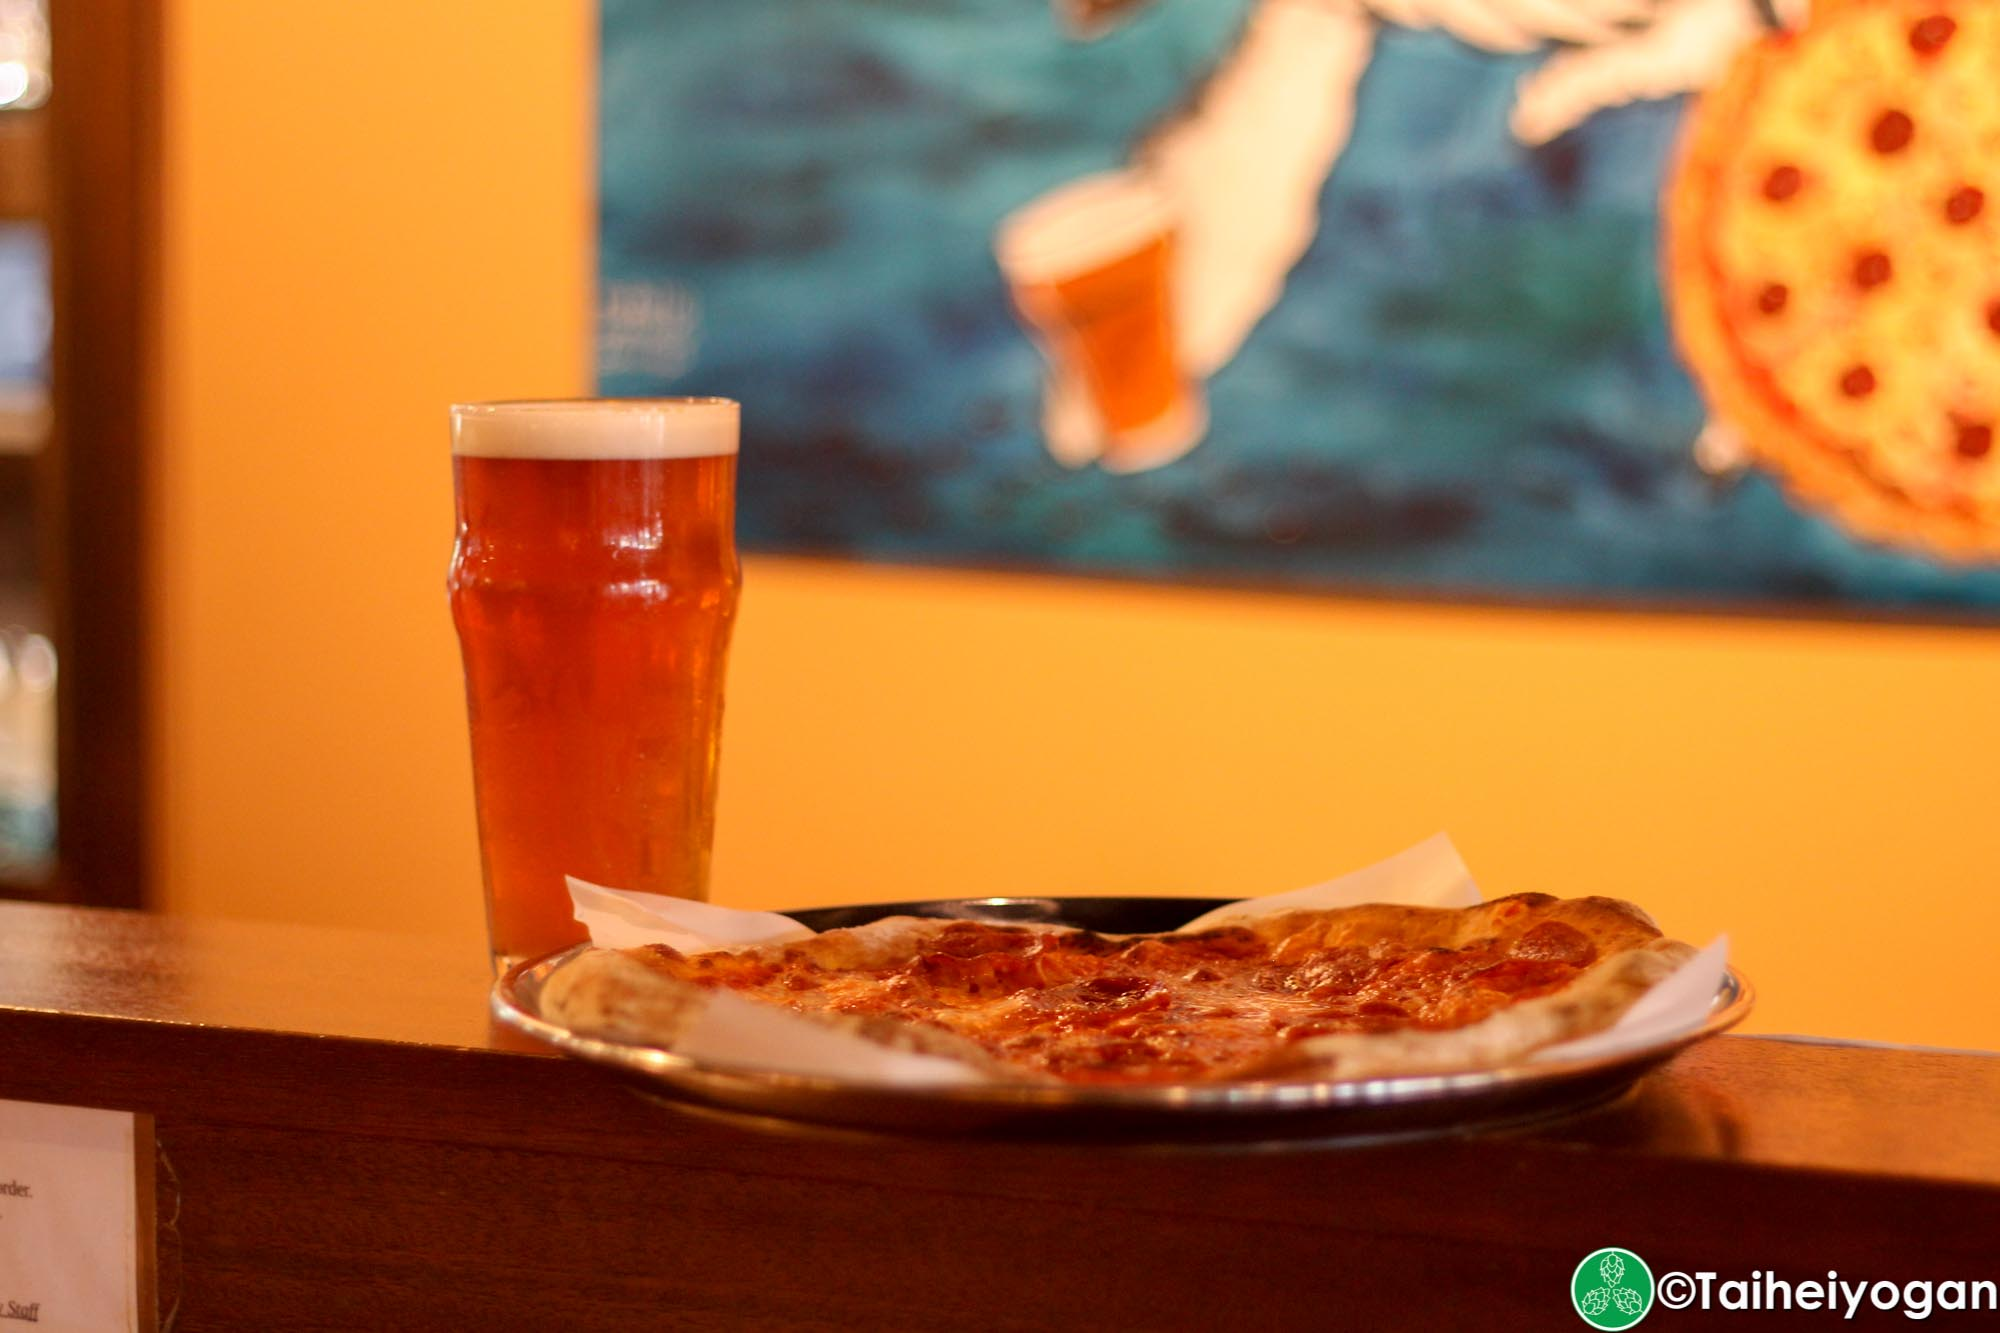 Okinawa Brewing Company - Menu - Pizza & Okinawa Brewing Company Beer